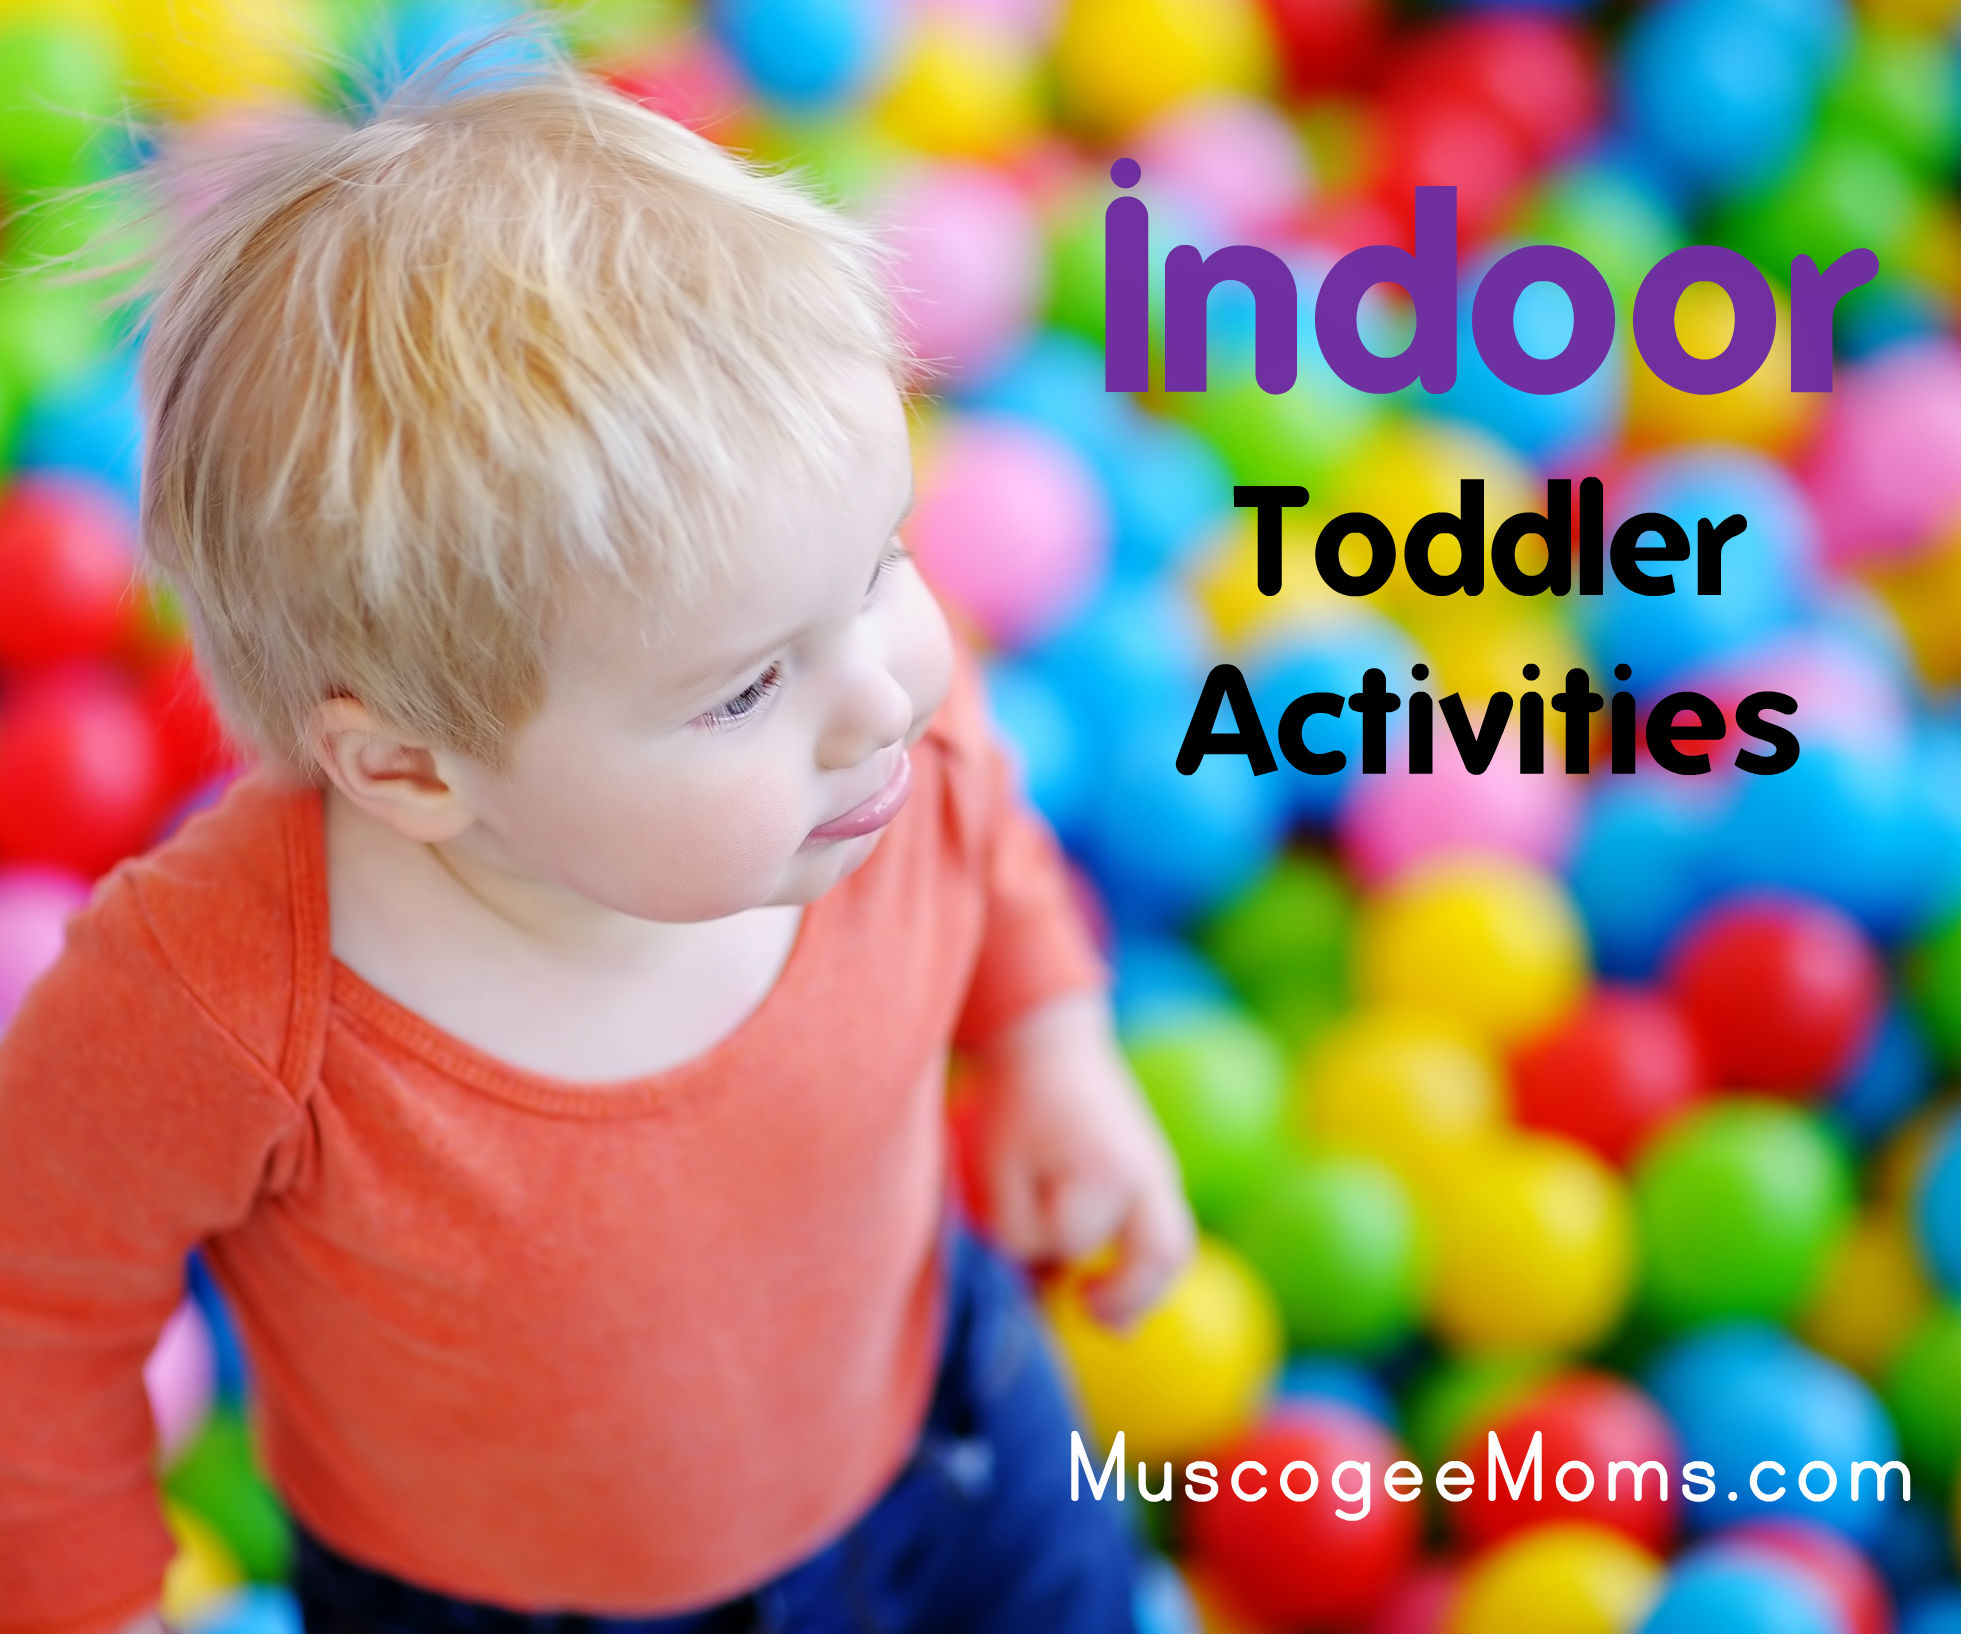 Indoor Toddler Activities in Columbus GA Muscogee Moms